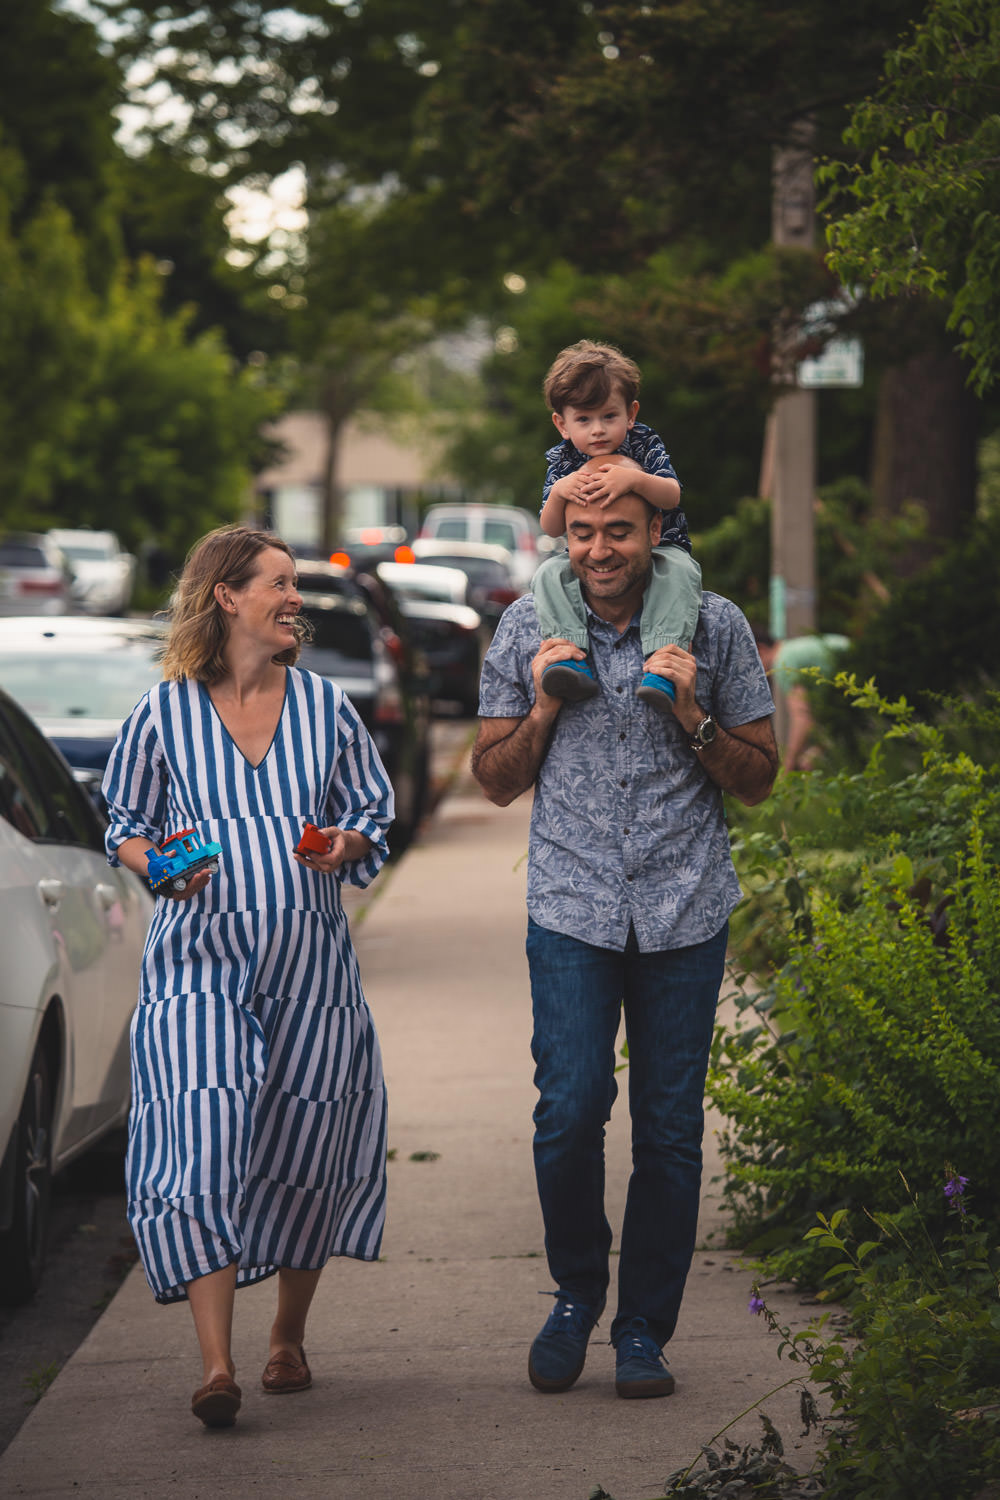 Parents walking with son during toronto maternity photo session